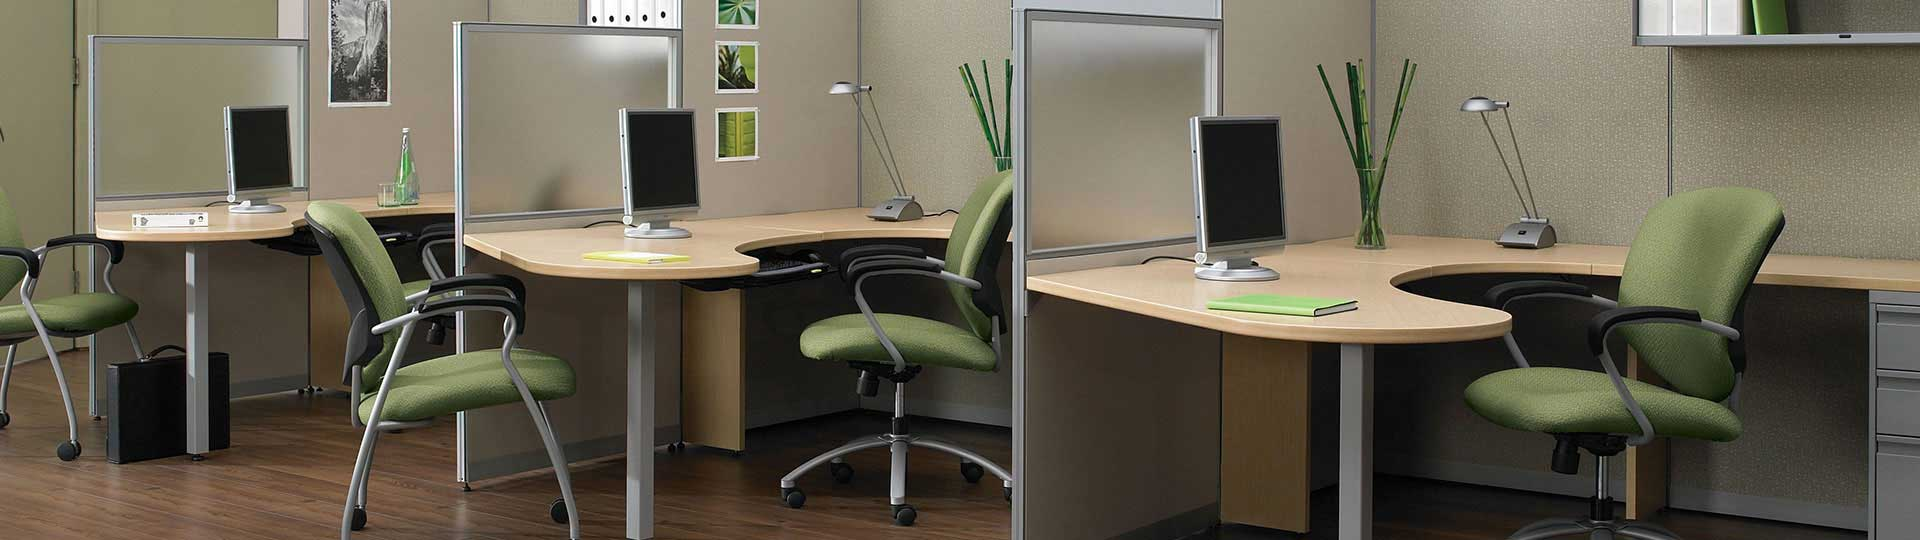 rosi cubicles - Office Cubicles